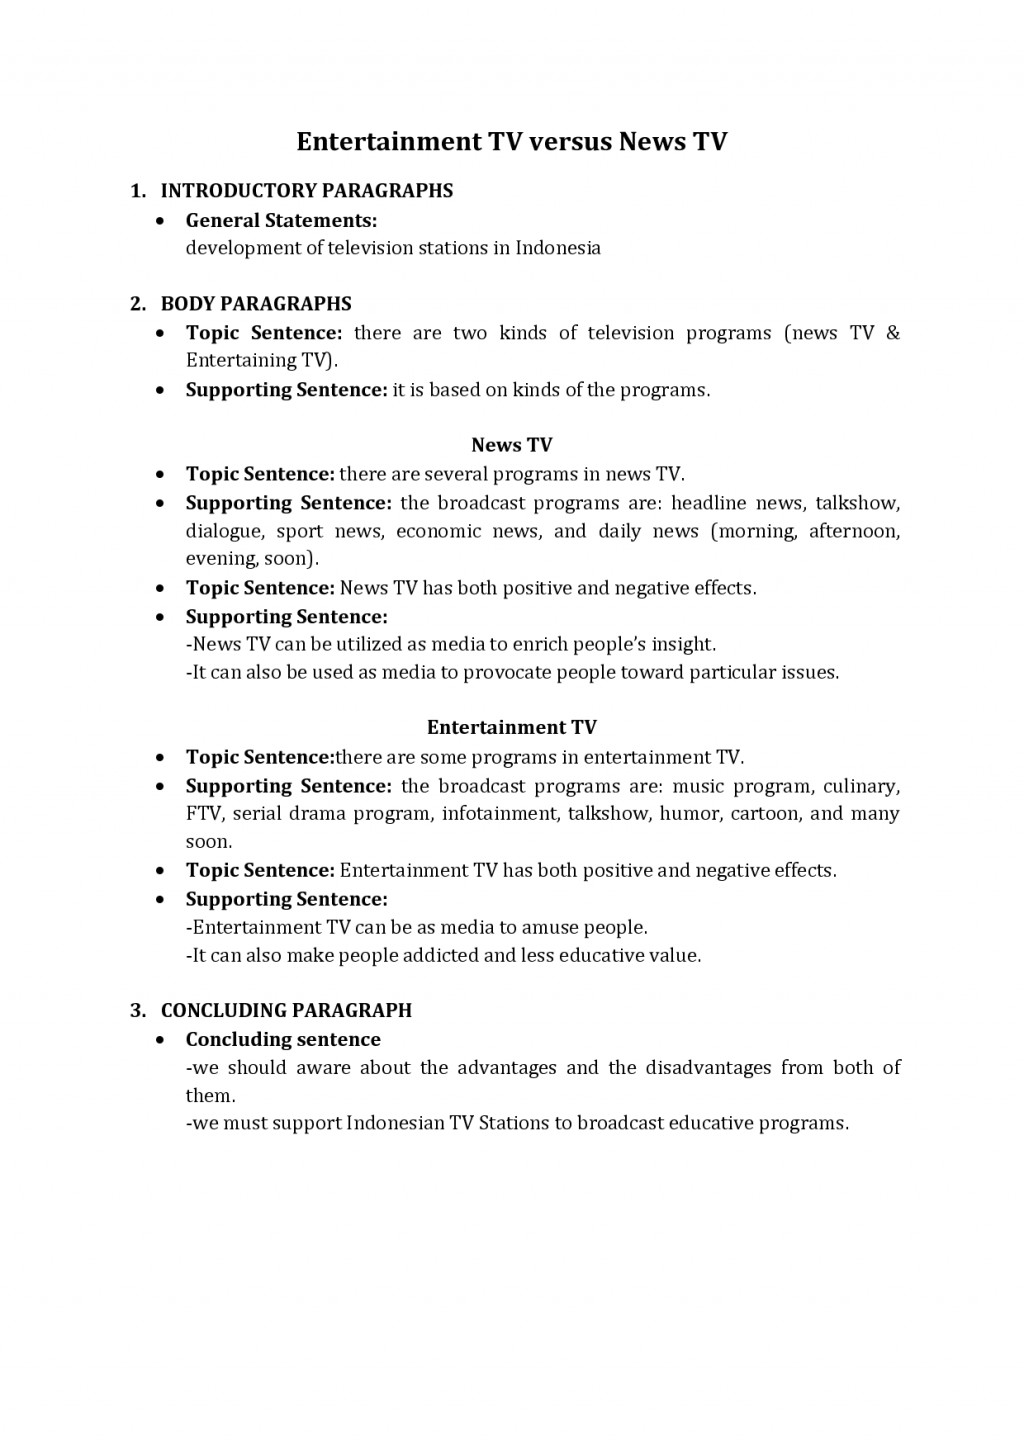 005 Fbunmxinib How To Write An Essay Outline Excellent For University A Research Paper Mla Format Pdf Large